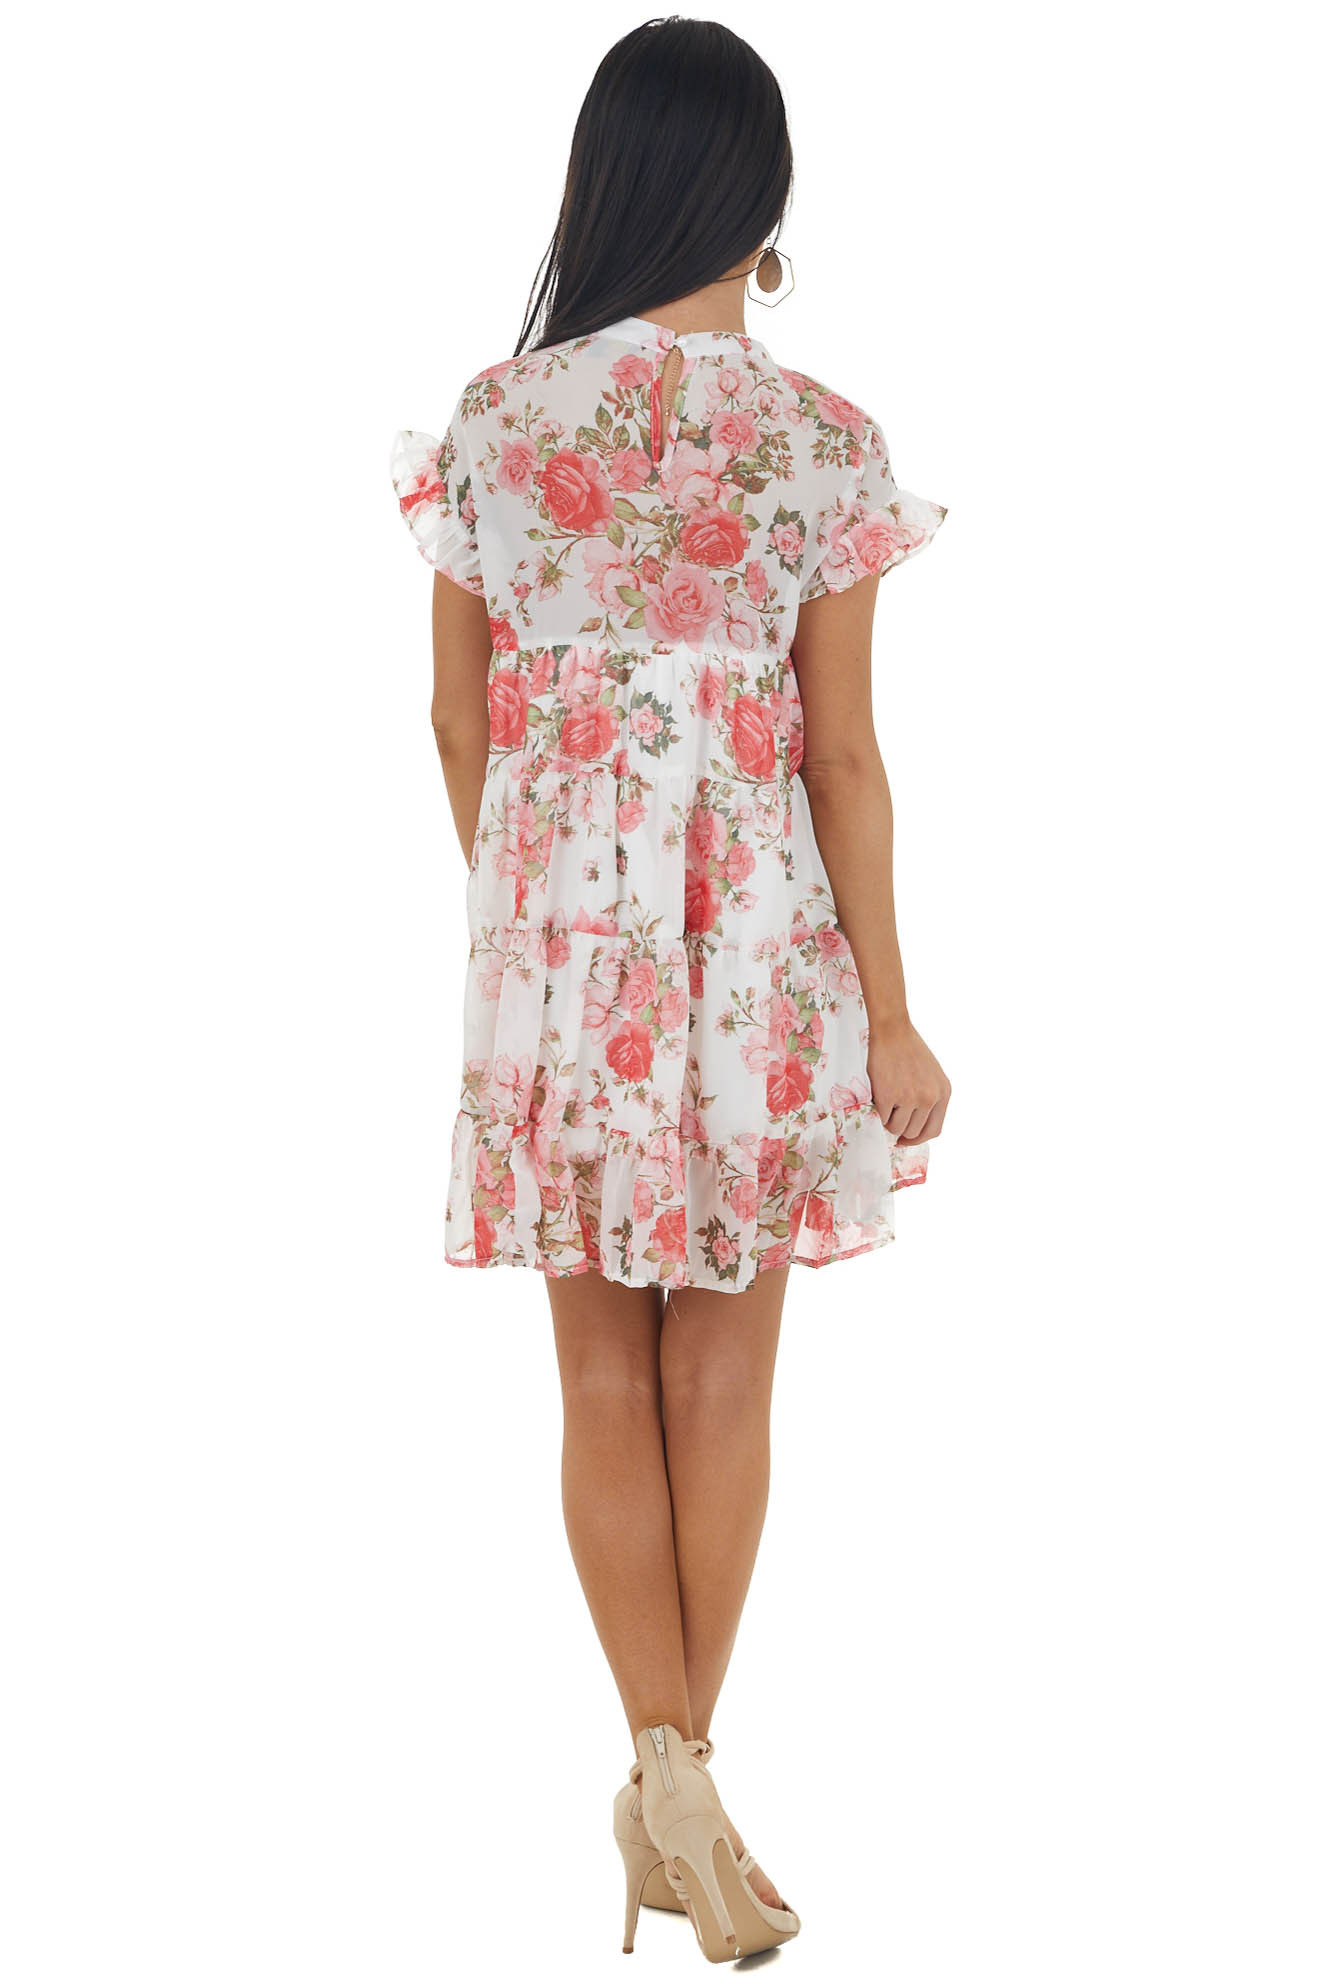 Ivory Floral Print Babydoll Short Dress with Short Sleeves